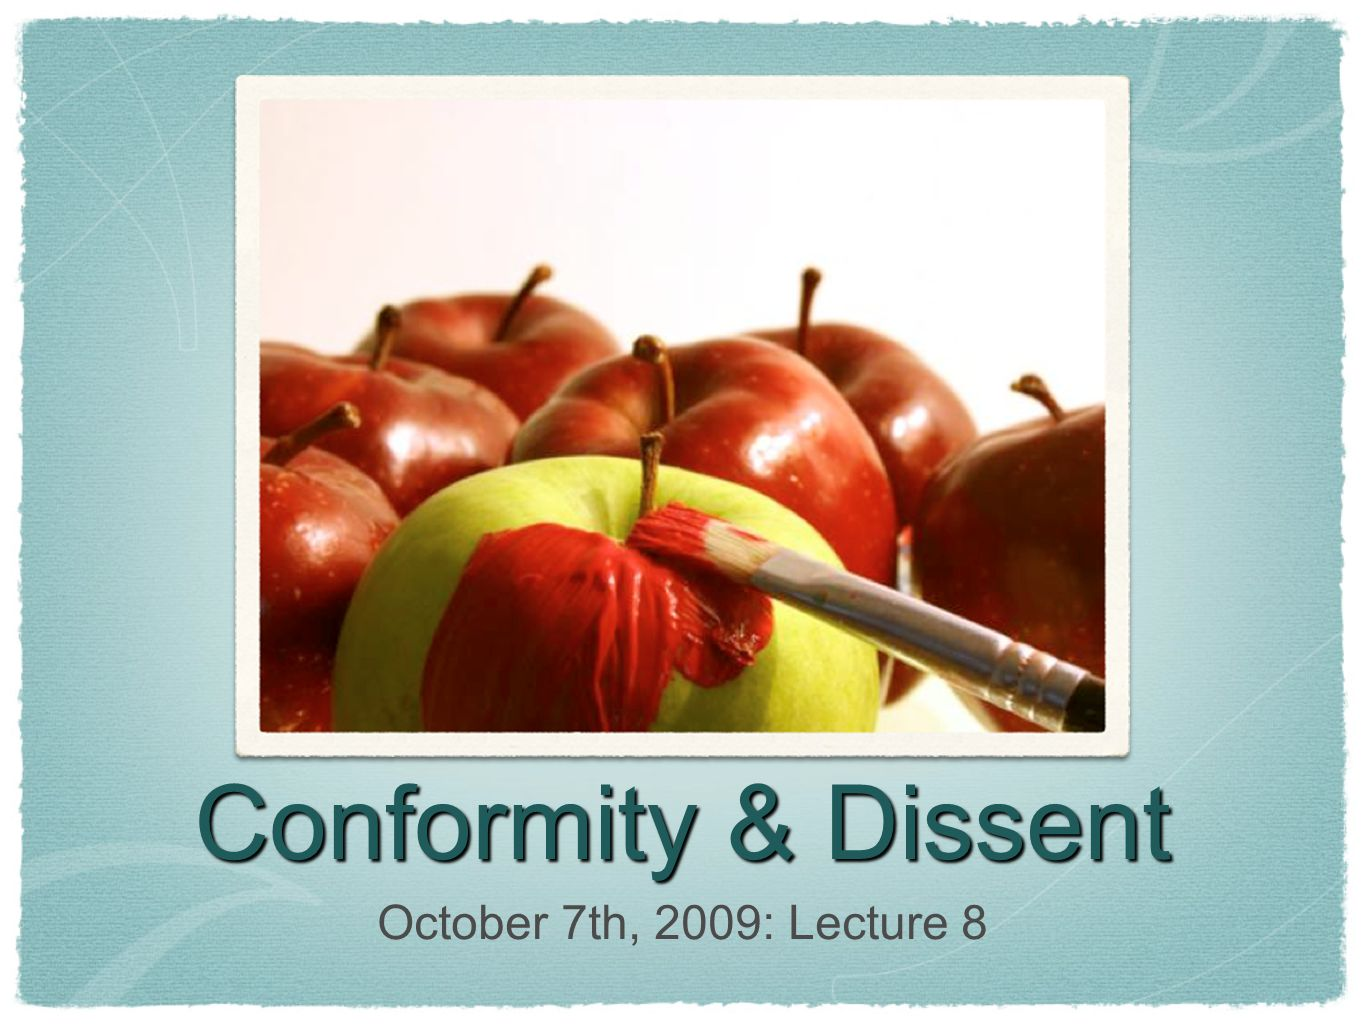 Conformity & Dissent October 7th, 2009: Lecture 8